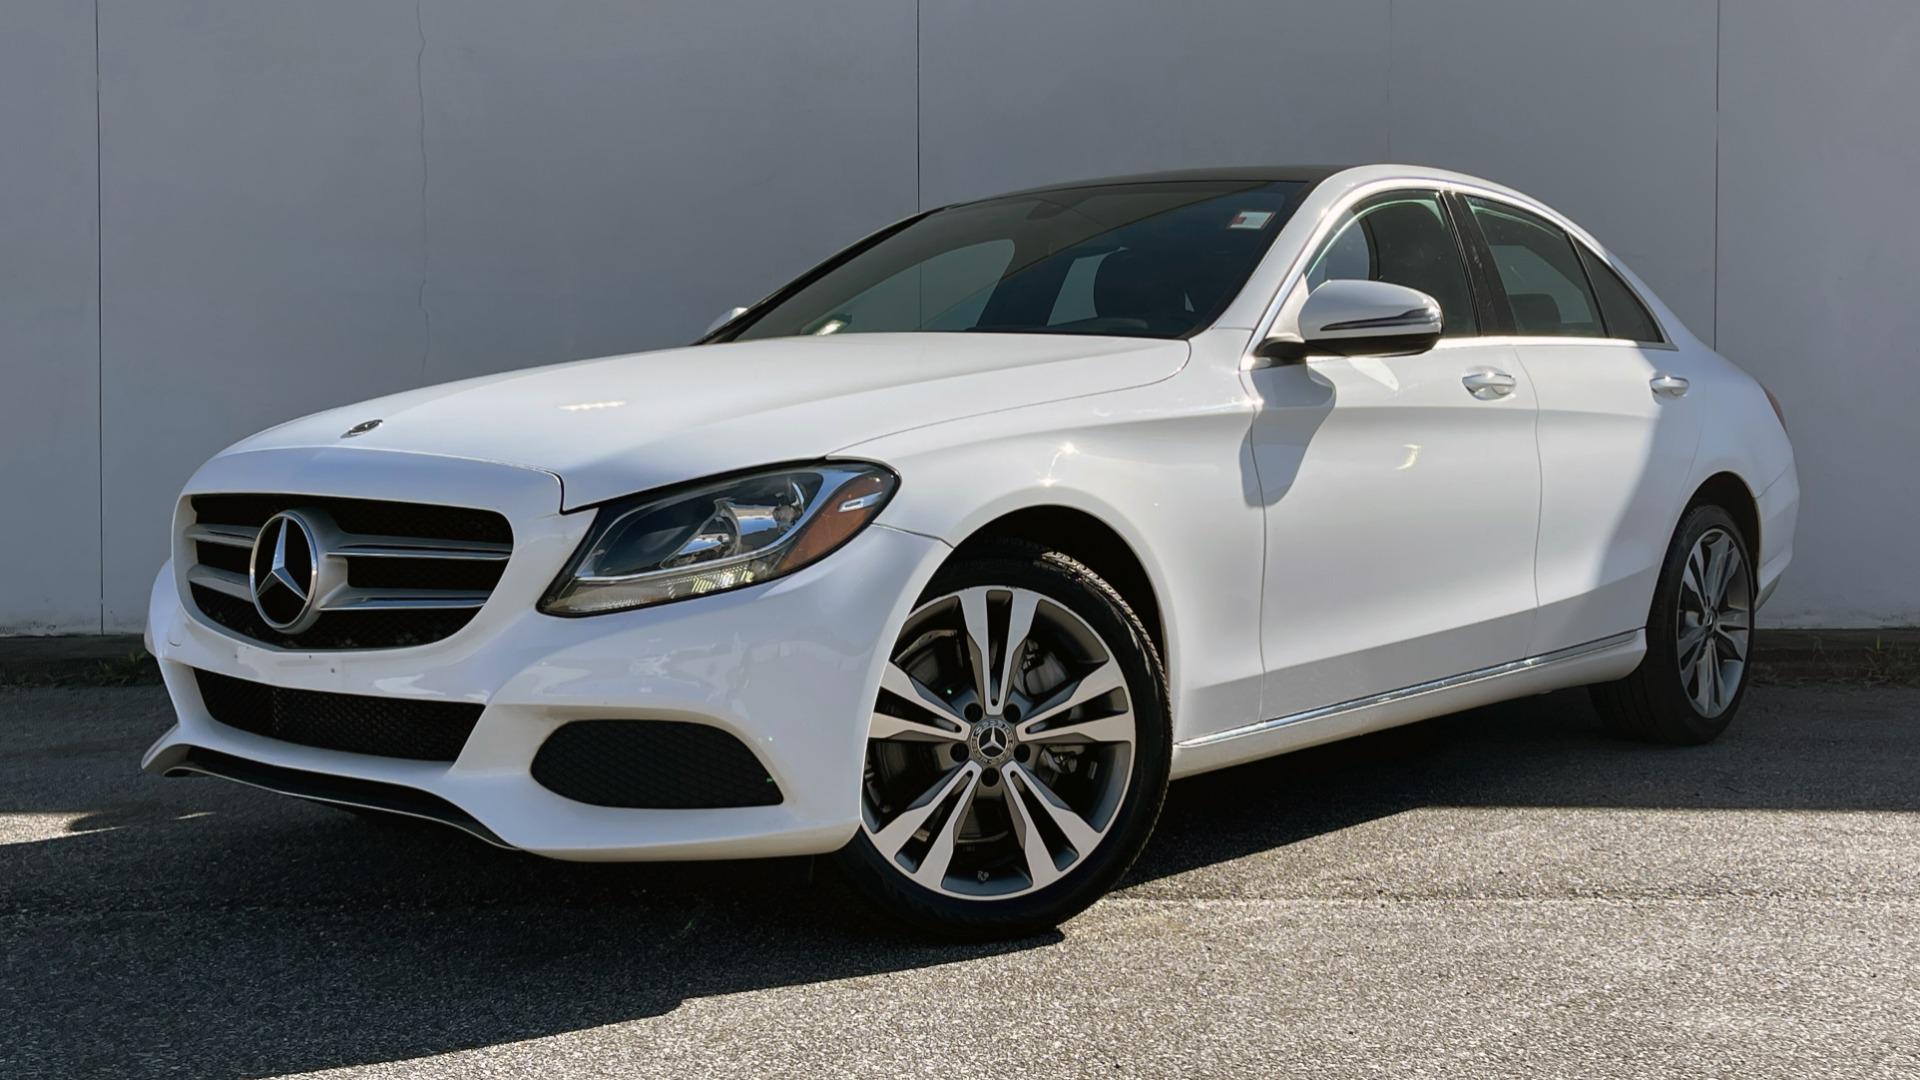 Used 2018 Mercedes-Benz C-CLASS C 300 4MATIC PREMIUM / SMARTPHONE INTEG / PANO-ROOF / REARVIEW for sale $30,995 at Formula Imports in Charlotte NC 28227 1